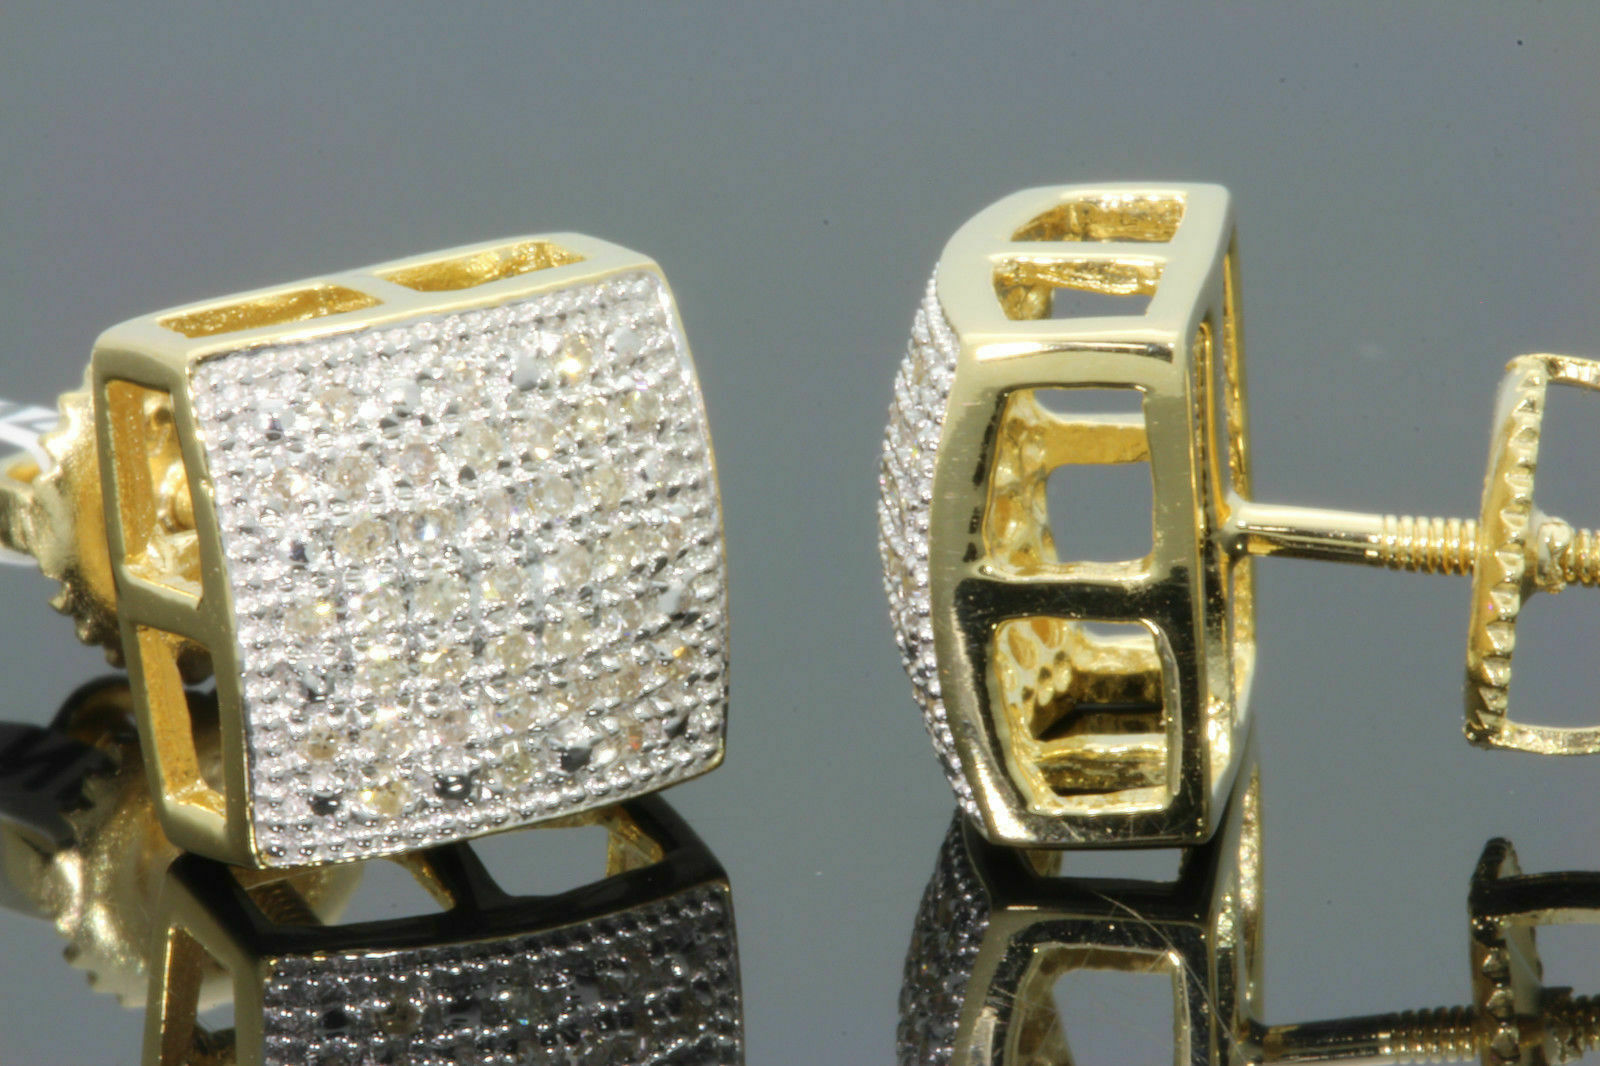 .19 CARAT YELLOW GOLD FINISH MENS WOMENS 9mm 100% REAL DIAMONDS EARRINGS STUDS